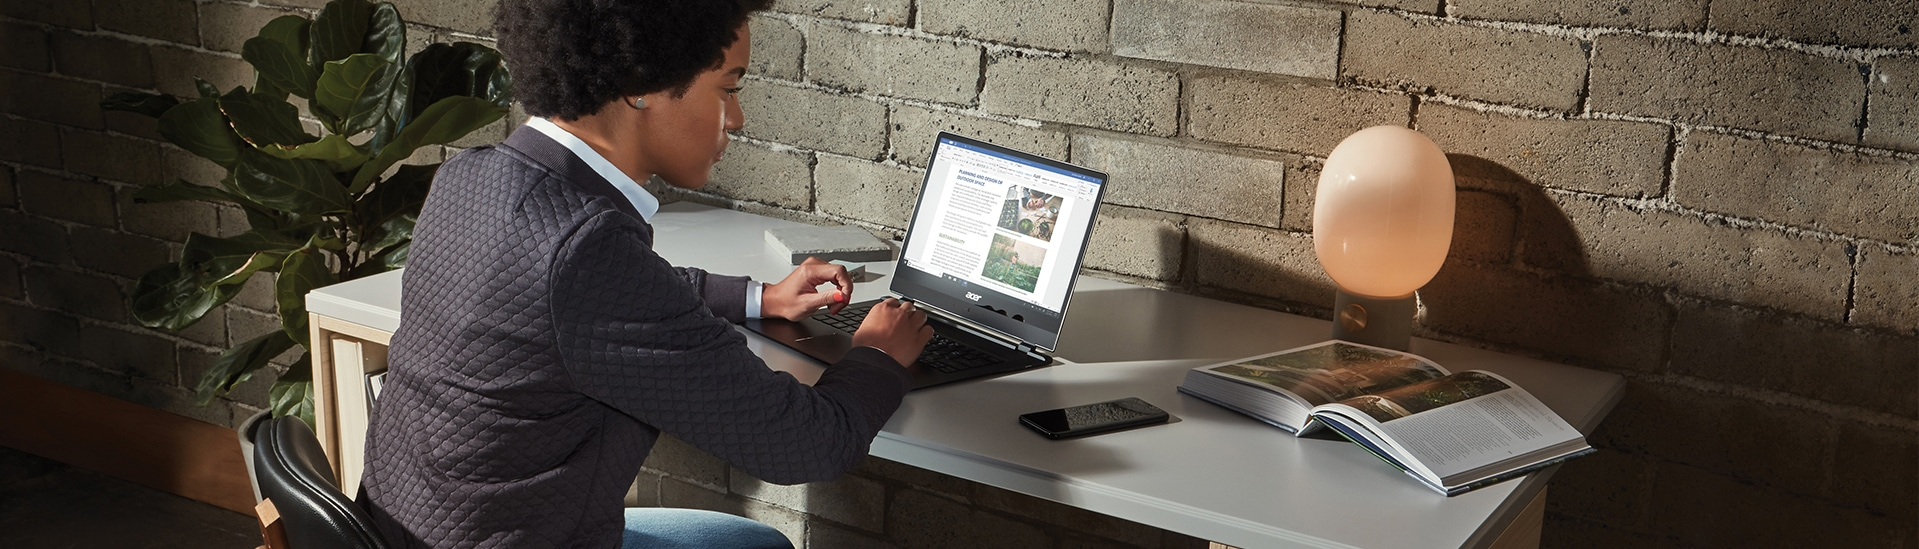 Photograph of a person seated at a desk working on a laptop. Also on the desk is a mobile device, an open book, and a decorative lamp.